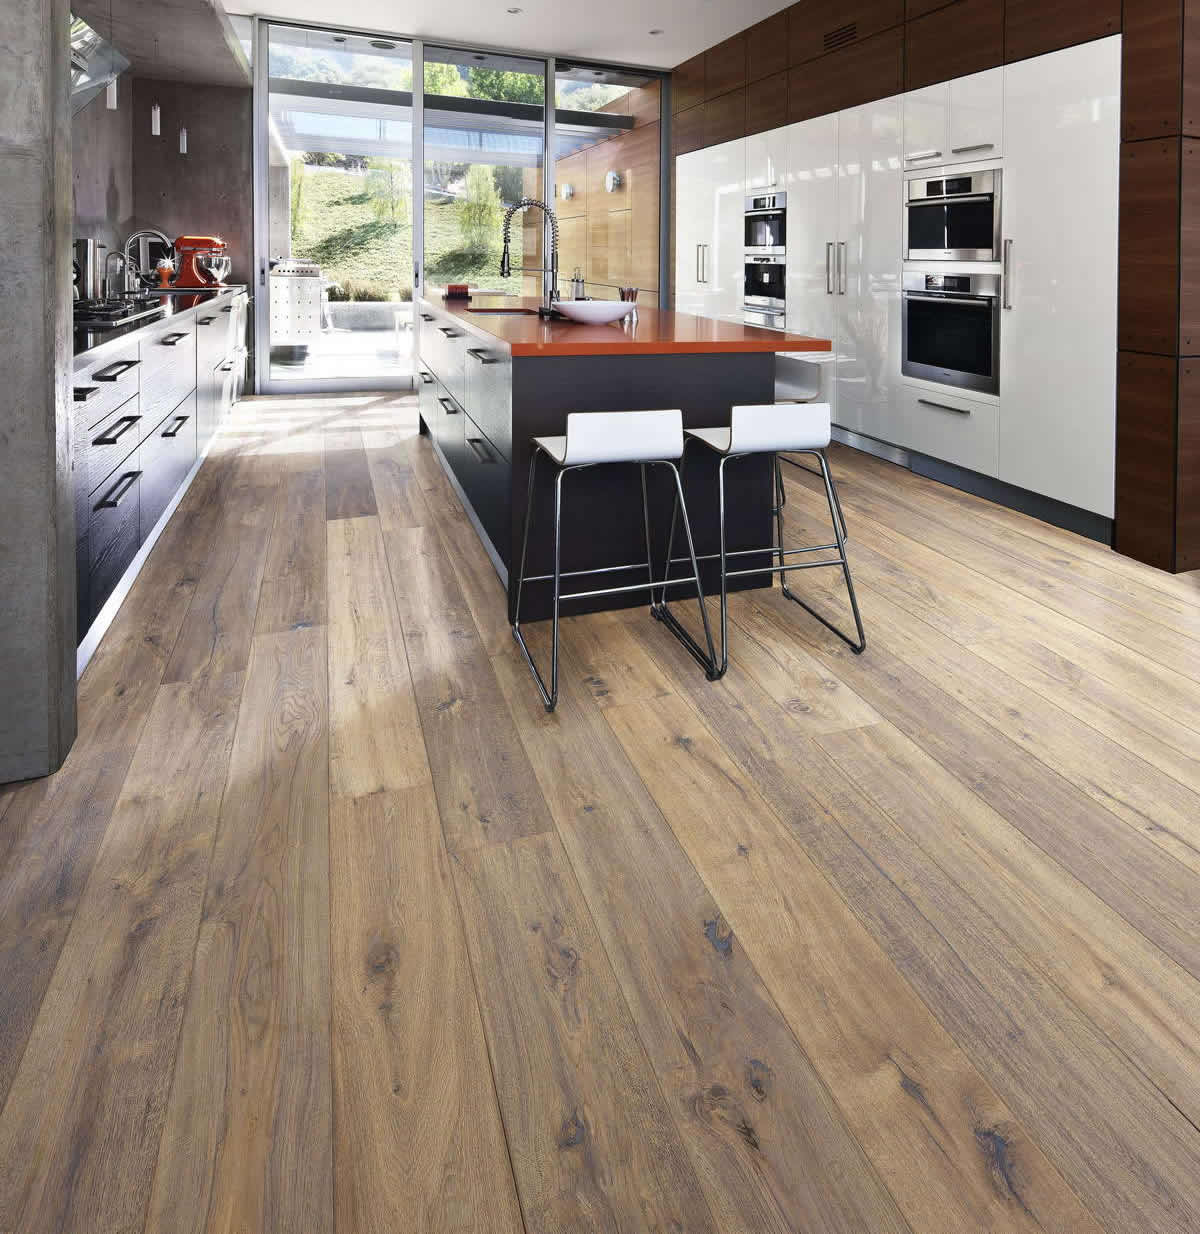 Kahrs artisan oak concrete for Kahrs flooring